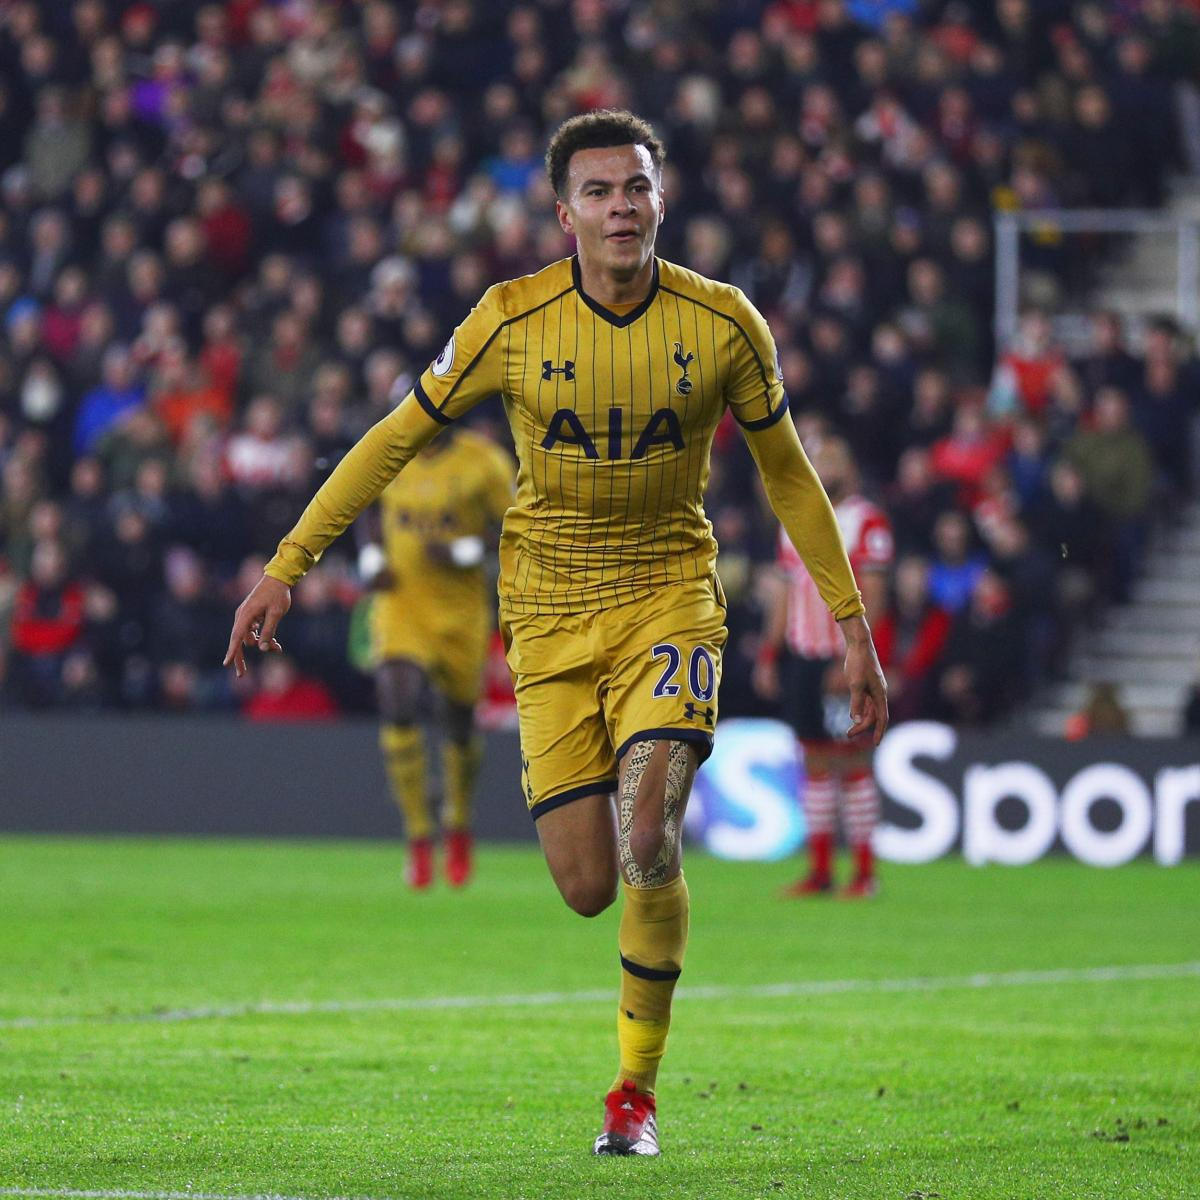 Inside The Window: Dele Alli And Alex Oxlade-Chamberlain In Focus